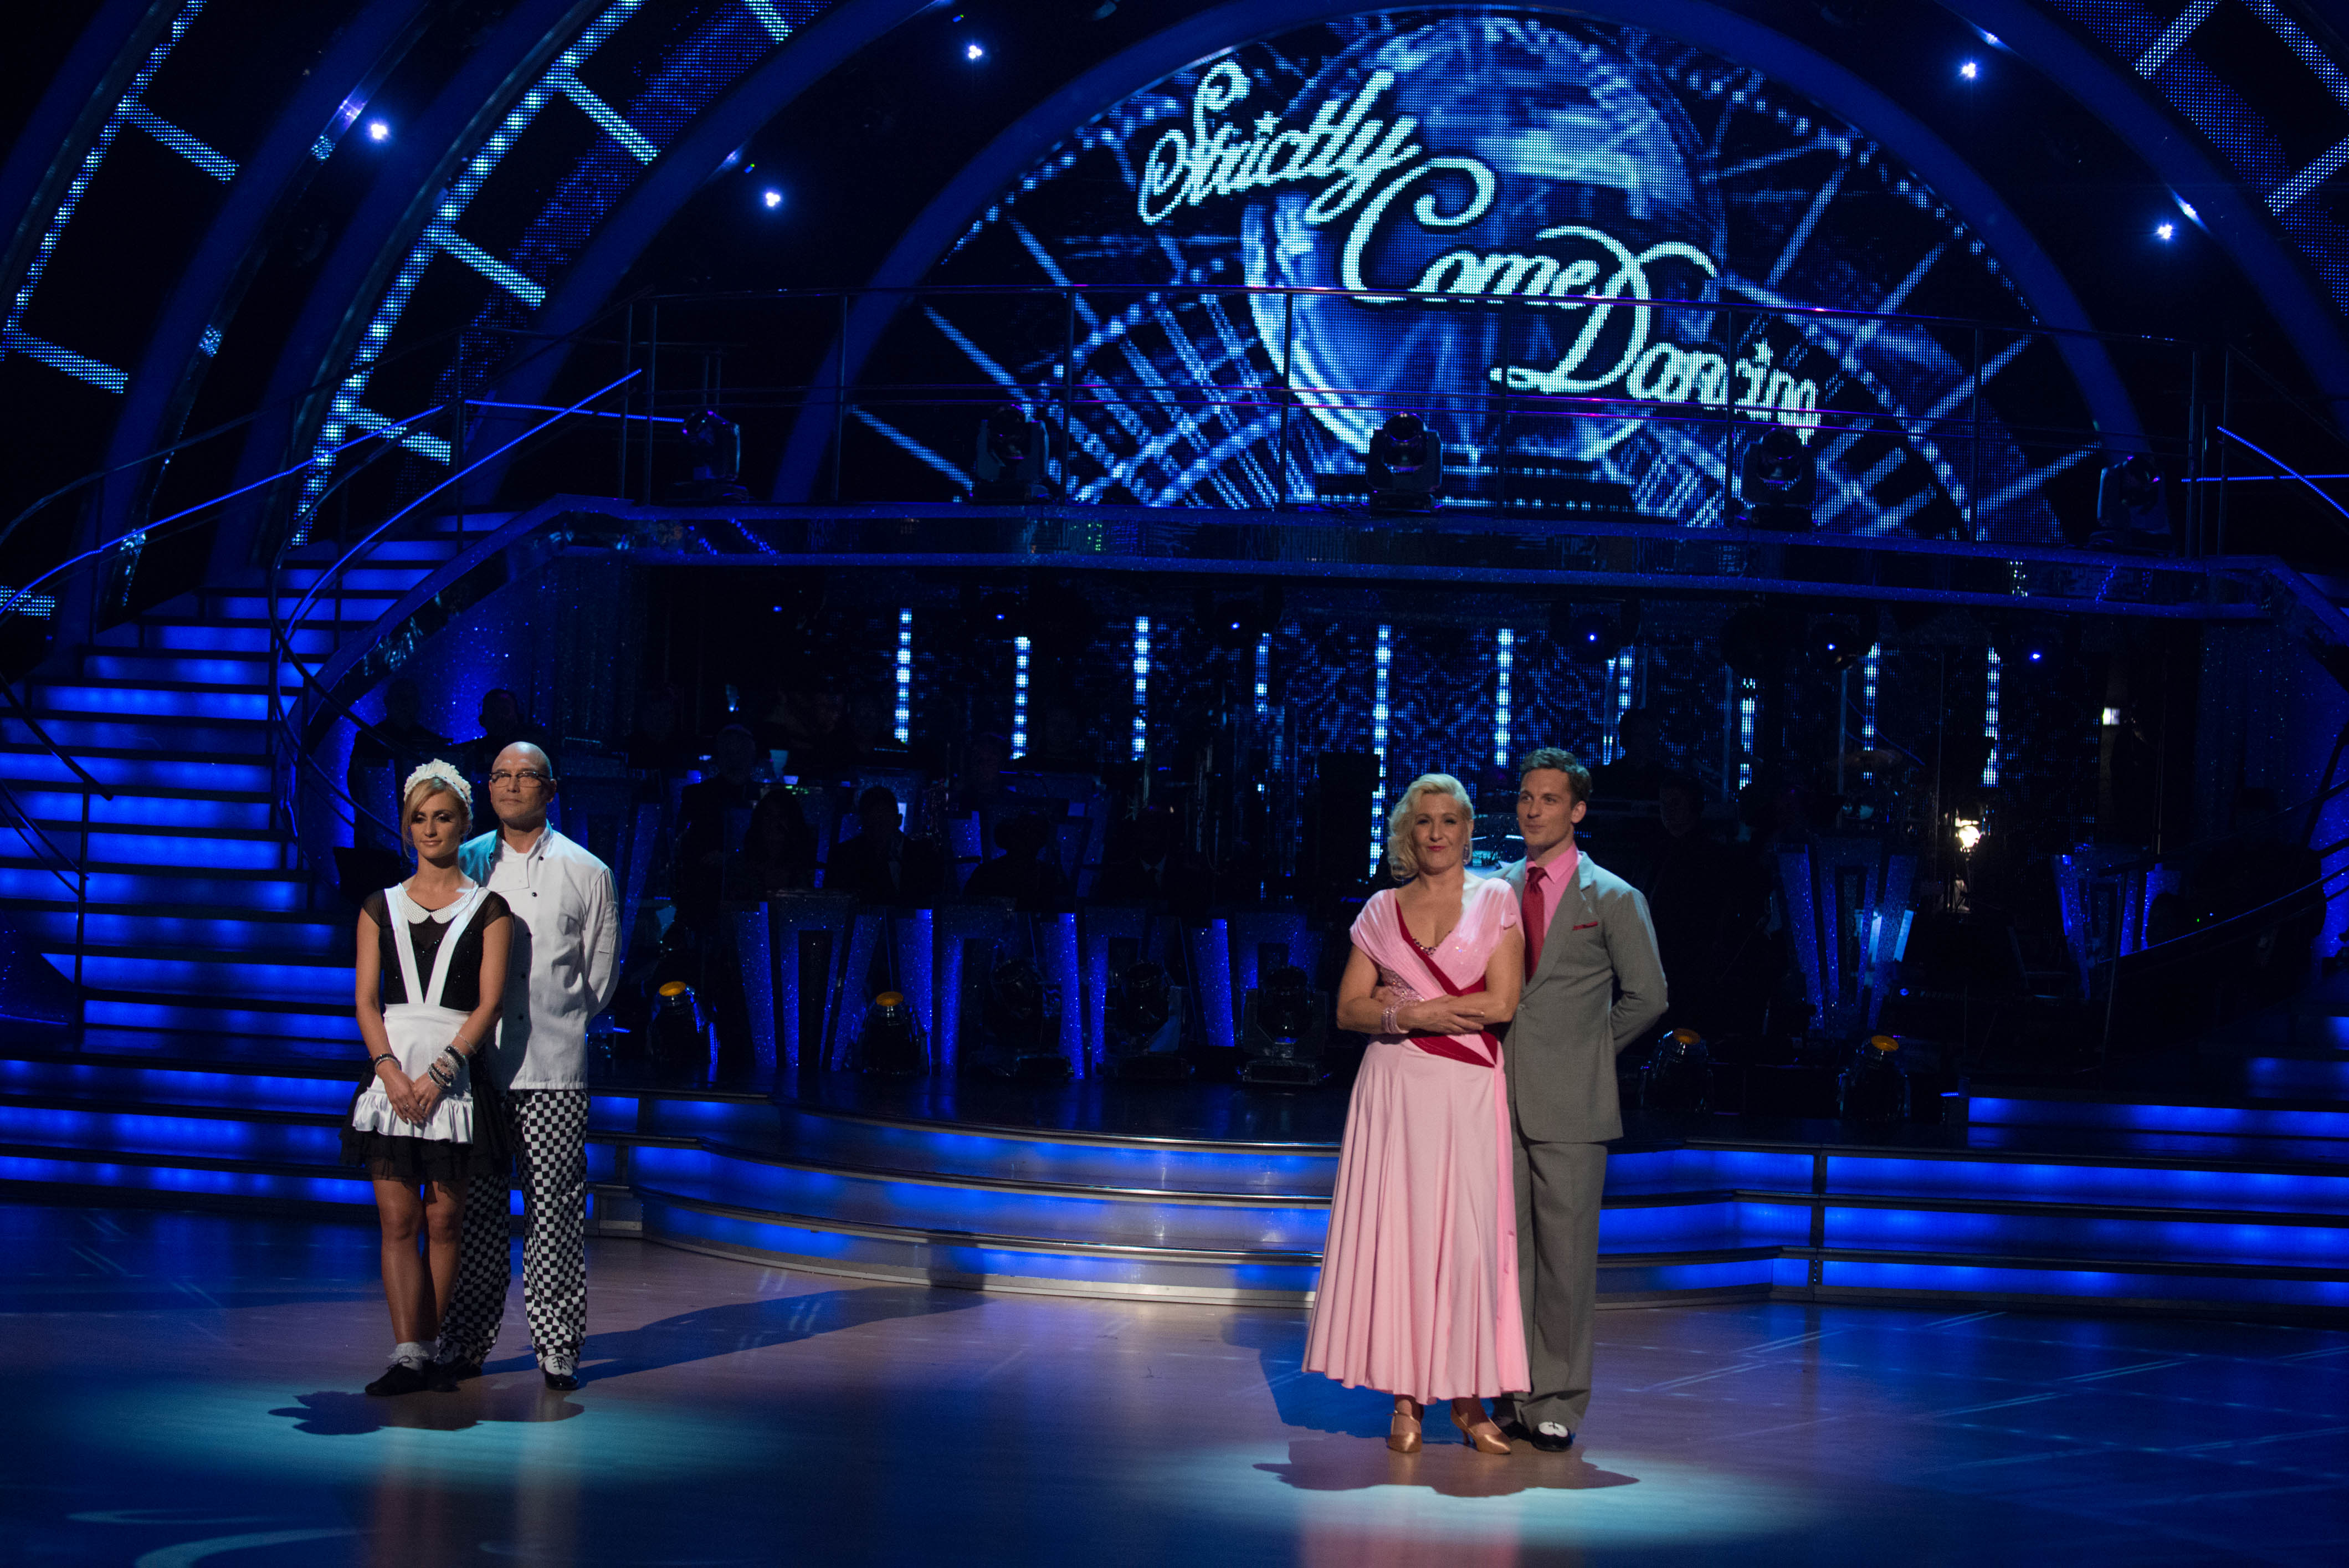 Gregg Wallace hangs up his dancing shoes as he becomes the first Strictly Come Dancing casualty